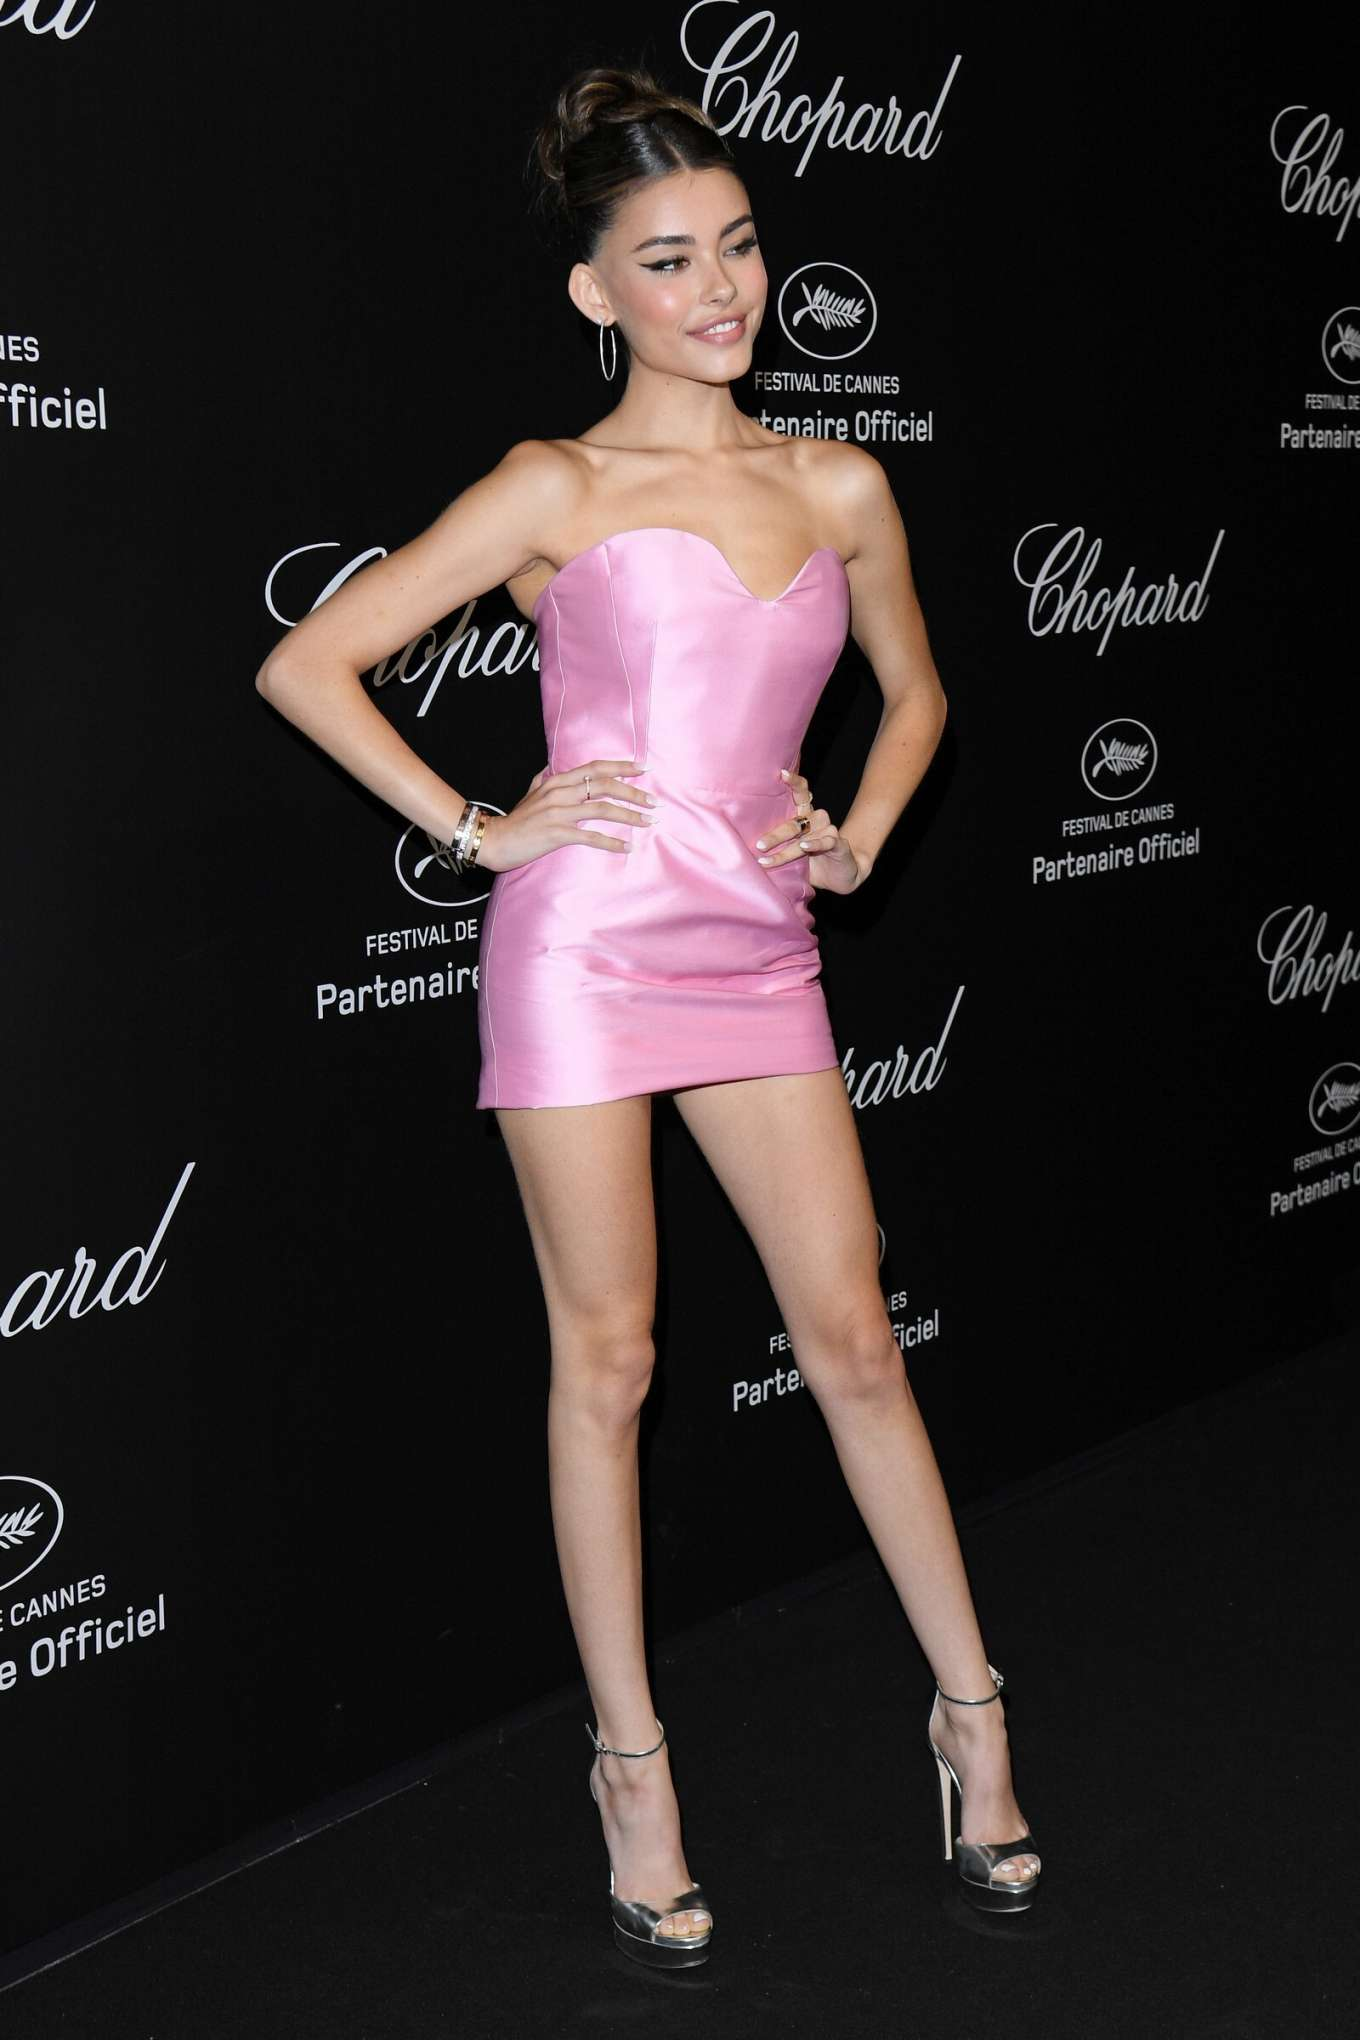 Madison Beer 2019 : Madison Beer: Chopard Party at 2019 Cannes Film Festival-13